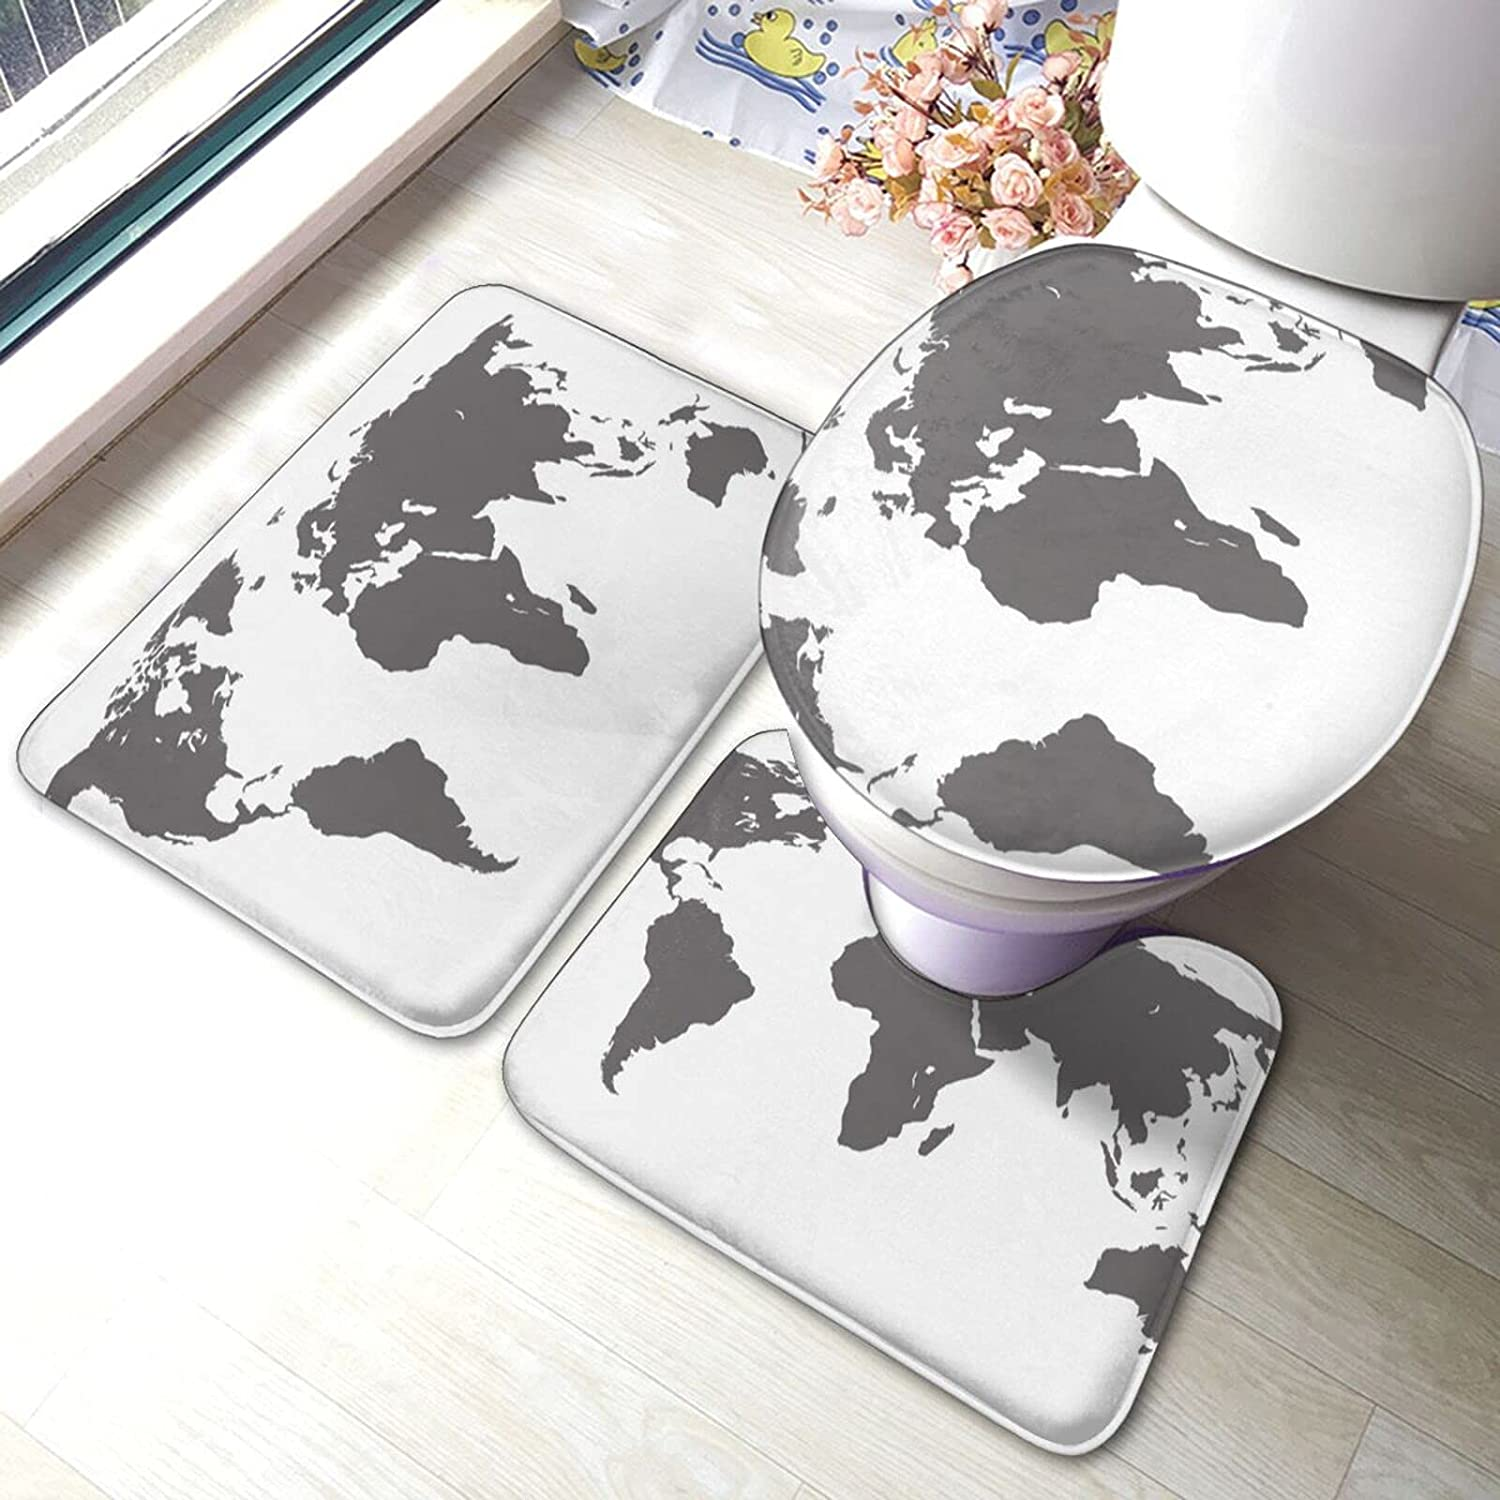 World Map-1 security Bathroom Limited time trial price Antiskid Set Sho 3 Bath Piece Pads